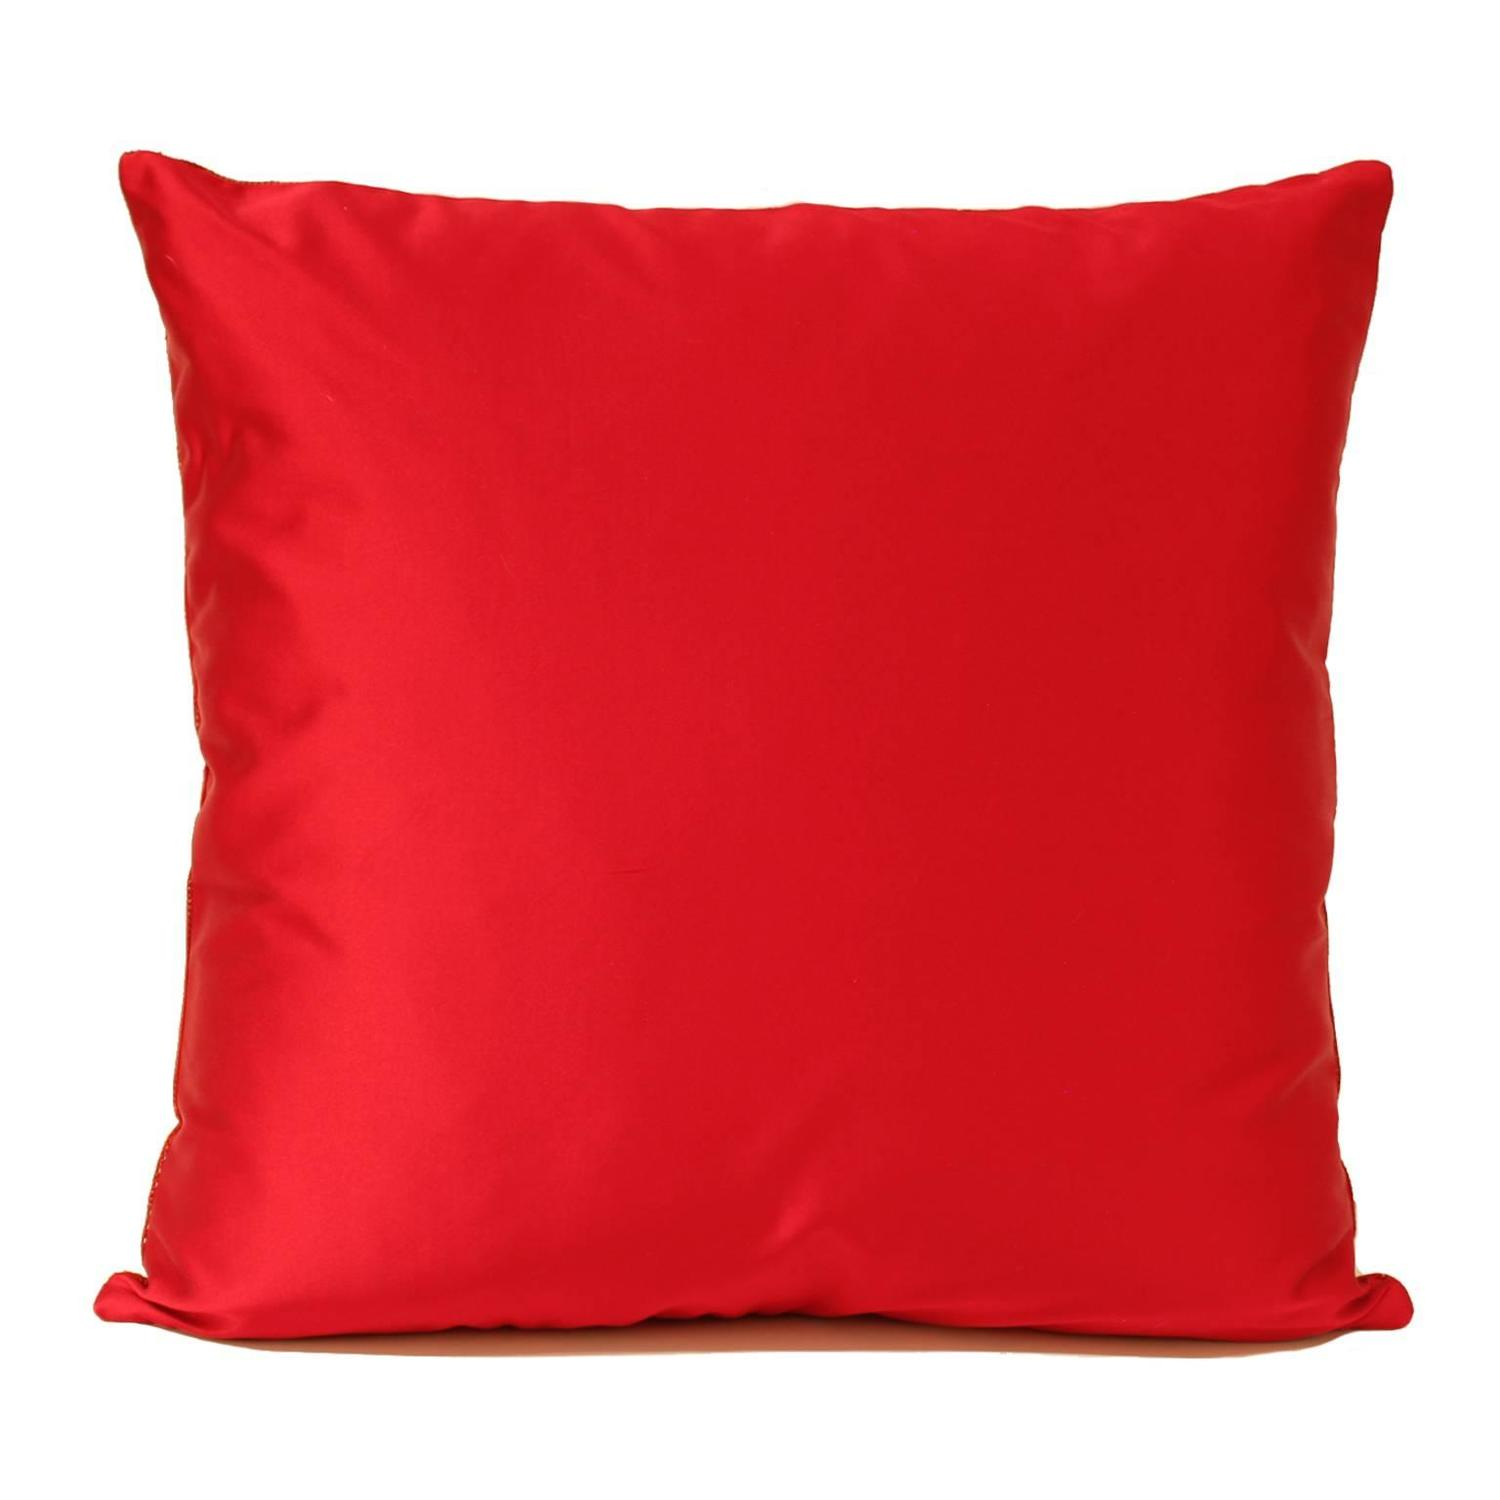 Large Red Perforated Leather Pillow For Sale at 1stdibs